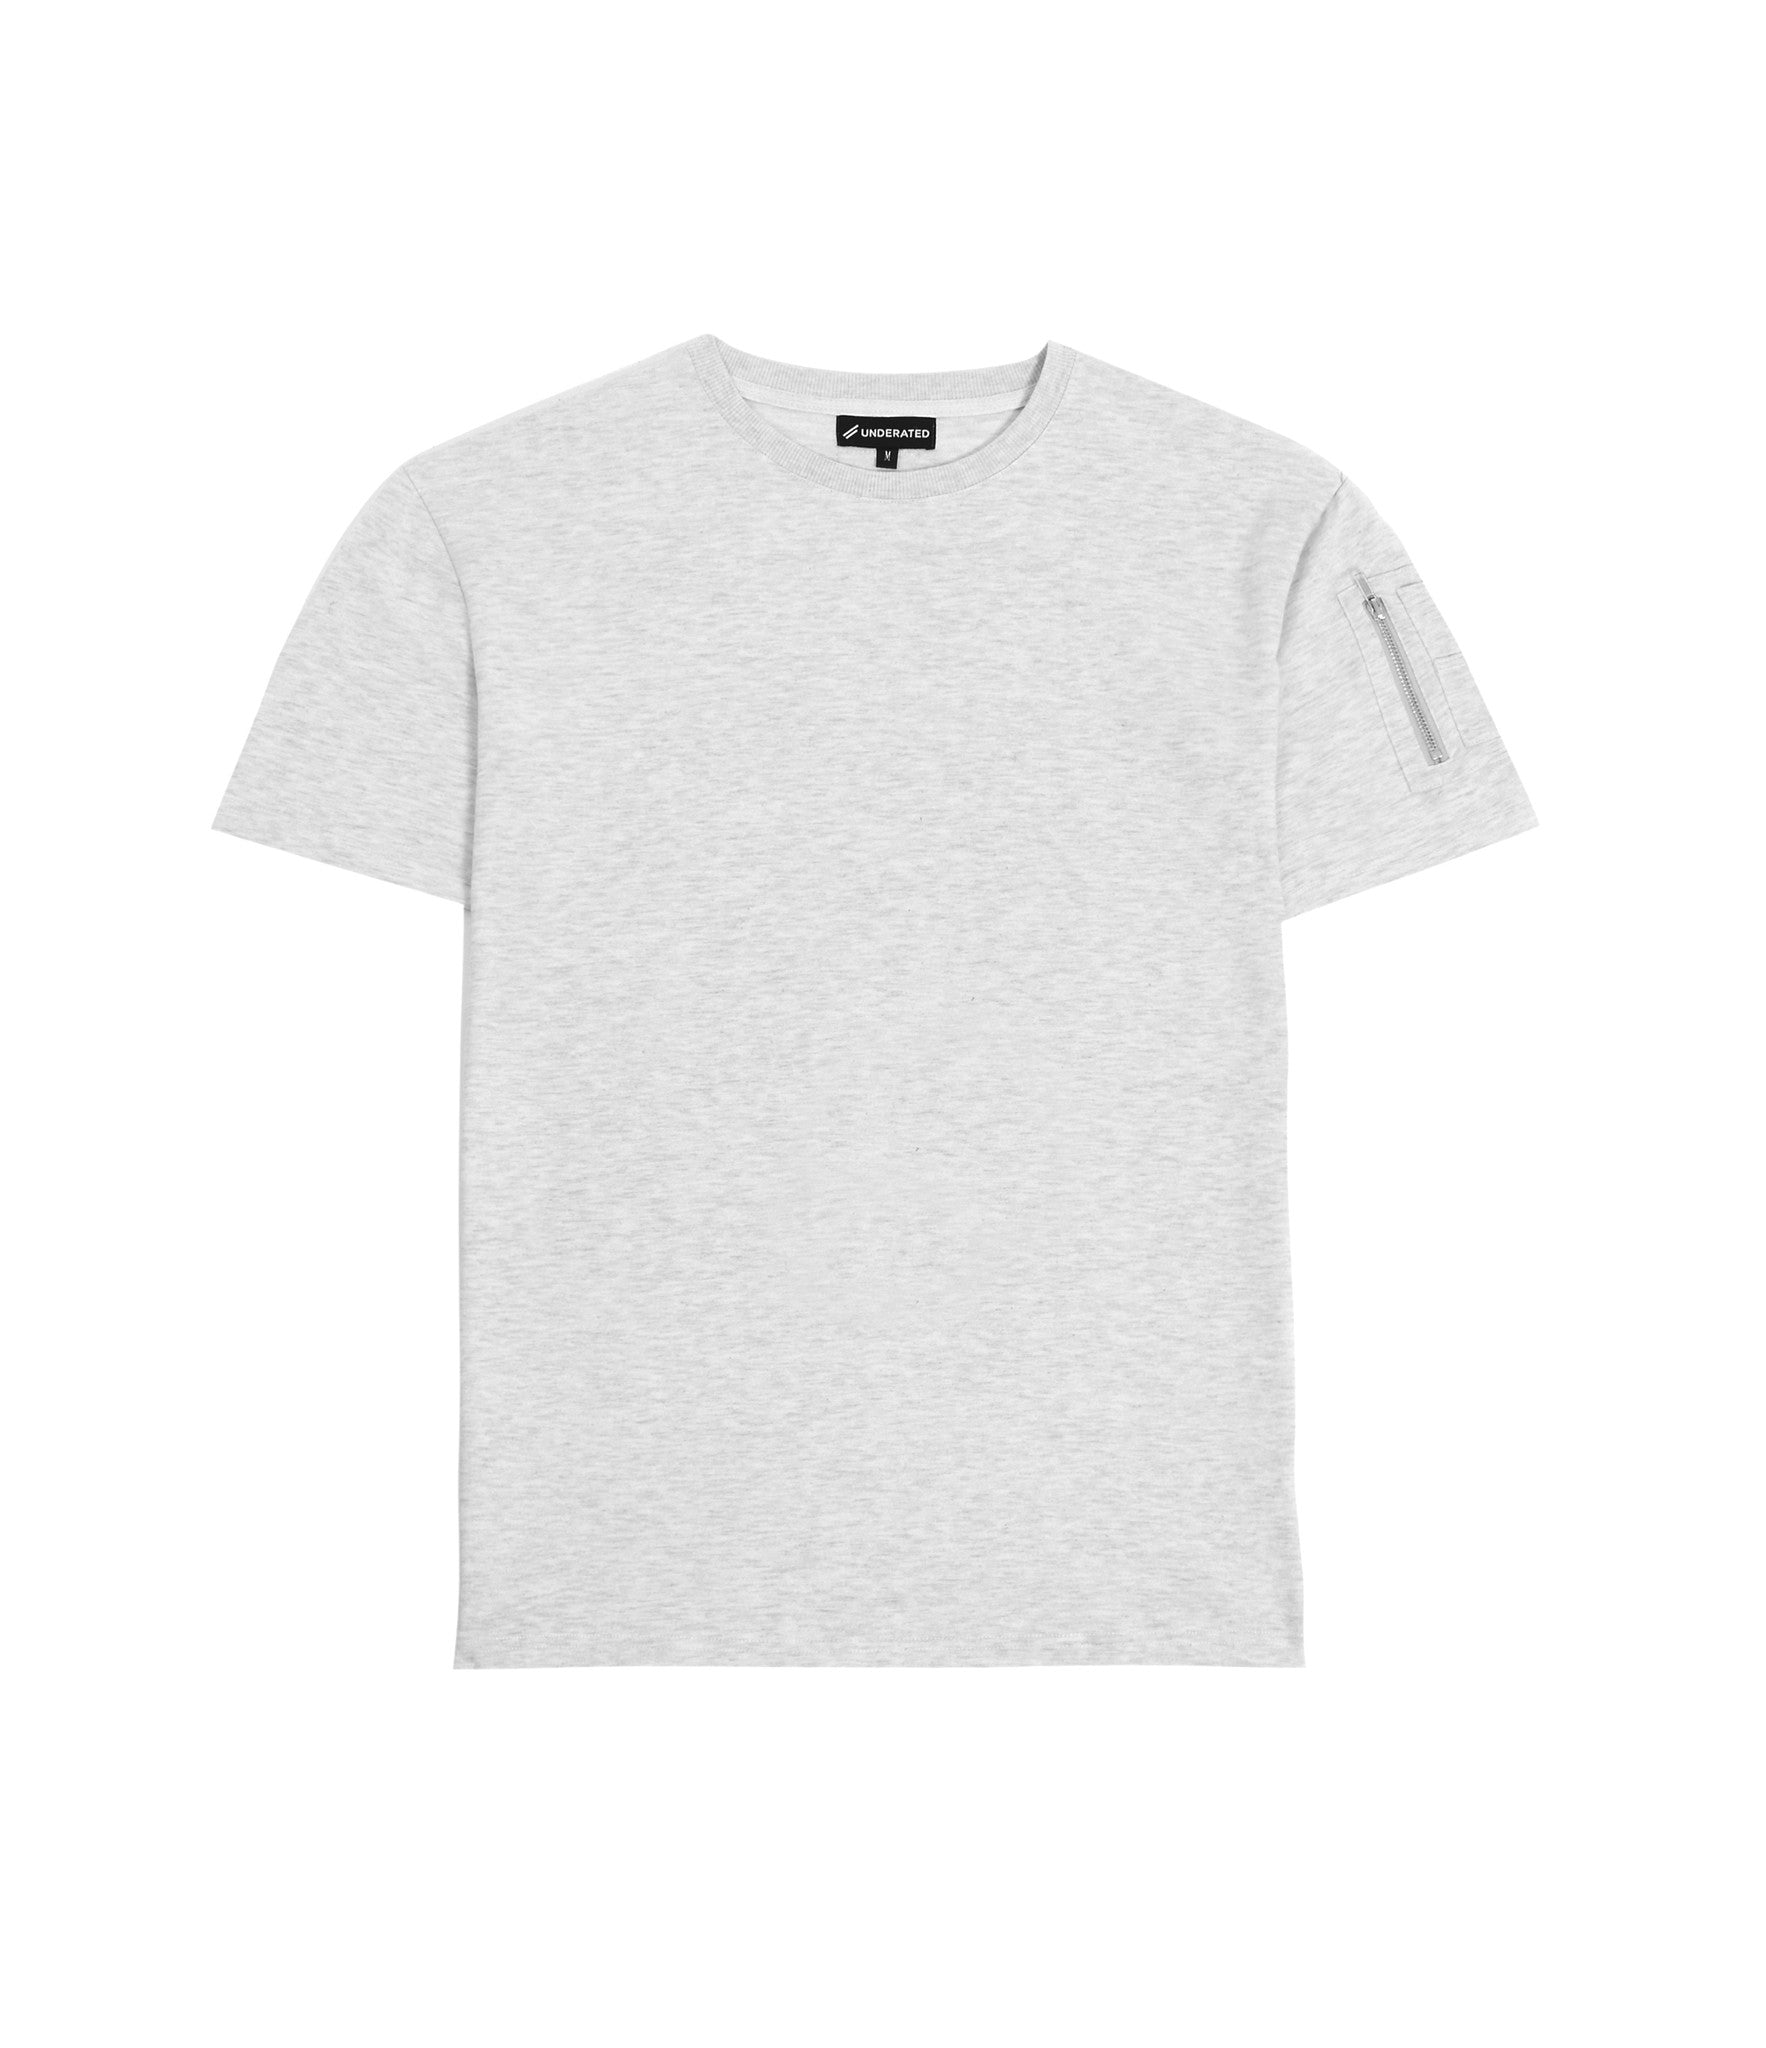 TS222 Drop Shoulder Utility Tee - Heather Grey - underated london - underatedco - 2